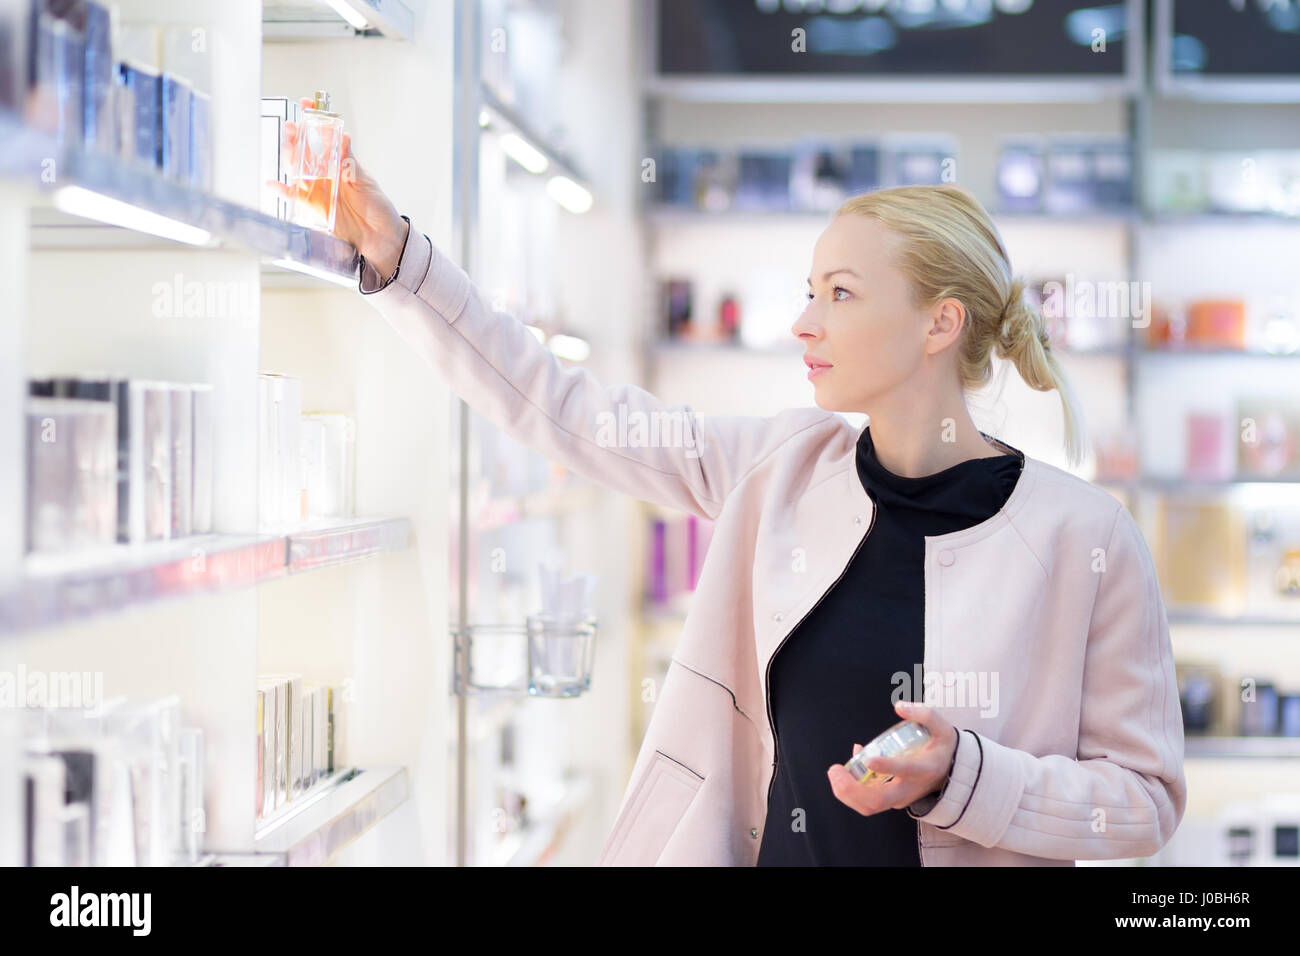 Beautiful woman shopping in beauty store. - Stock Image